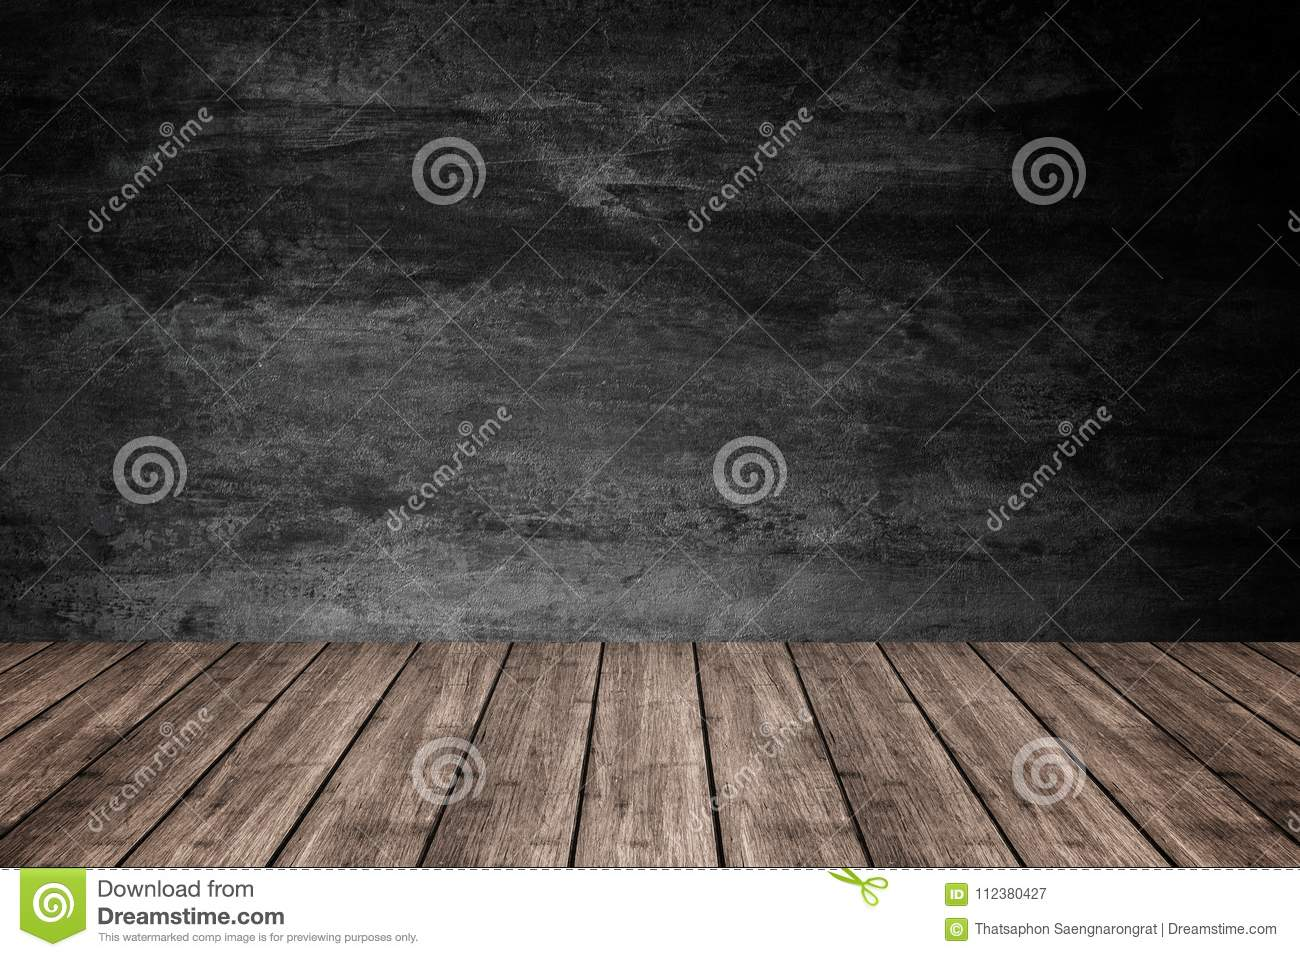 Empty Wooden Floor With Dark Concrete Wall Background, For